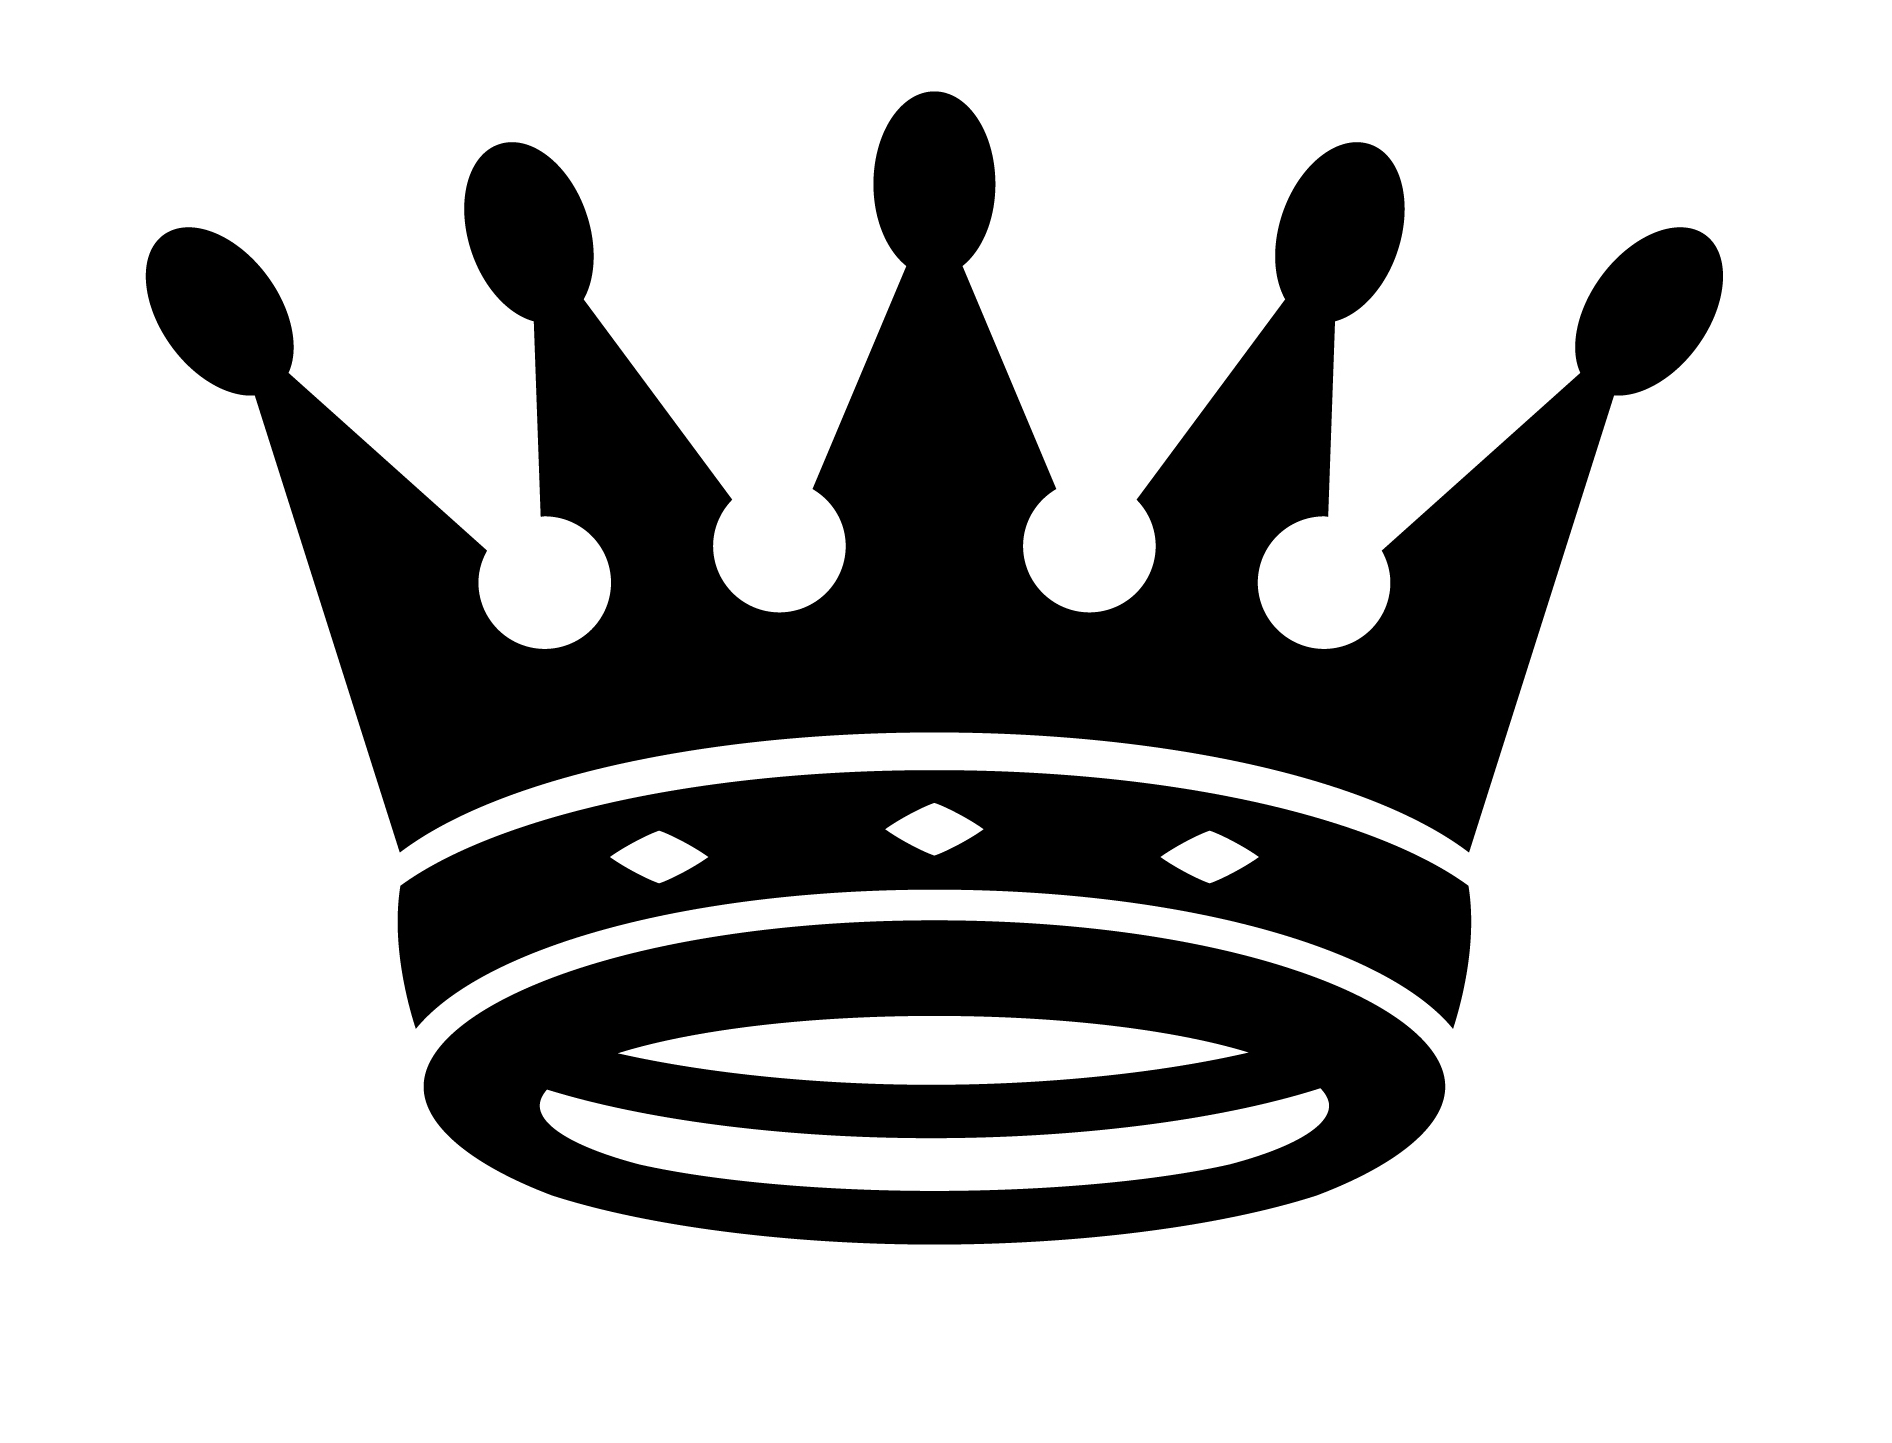 King logo clipart hd clip art black and white stock King Crown Clipart Black And White (#2046189) - HD Wallpaper Download clip art black and white stock